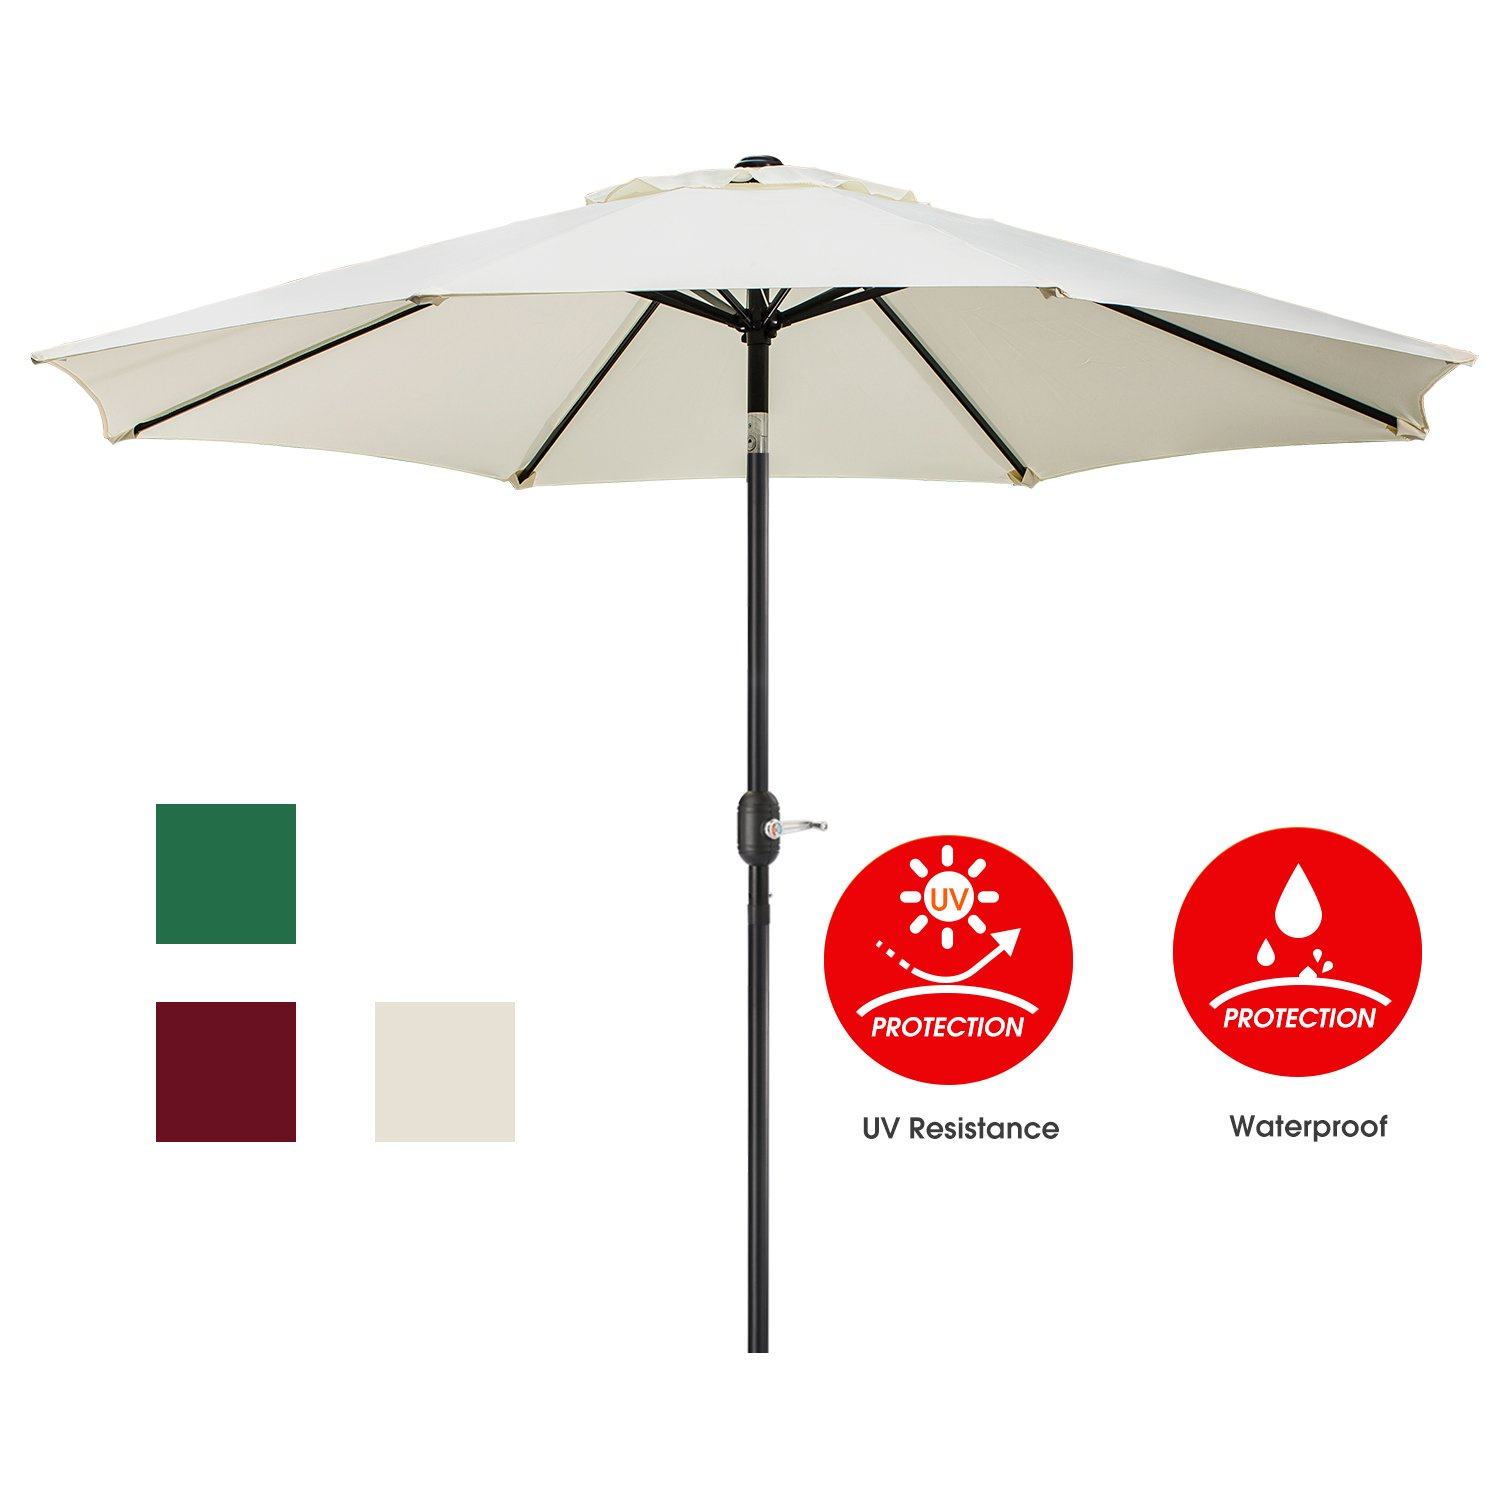 UMARDOO Patio Umbrella, Uhinoos 9 Ft Durable Alloy and Ribs outdoor table umbrella with Push Button Tilt and Crank, fade resistant,Water proof patio table umbrella (ivory)